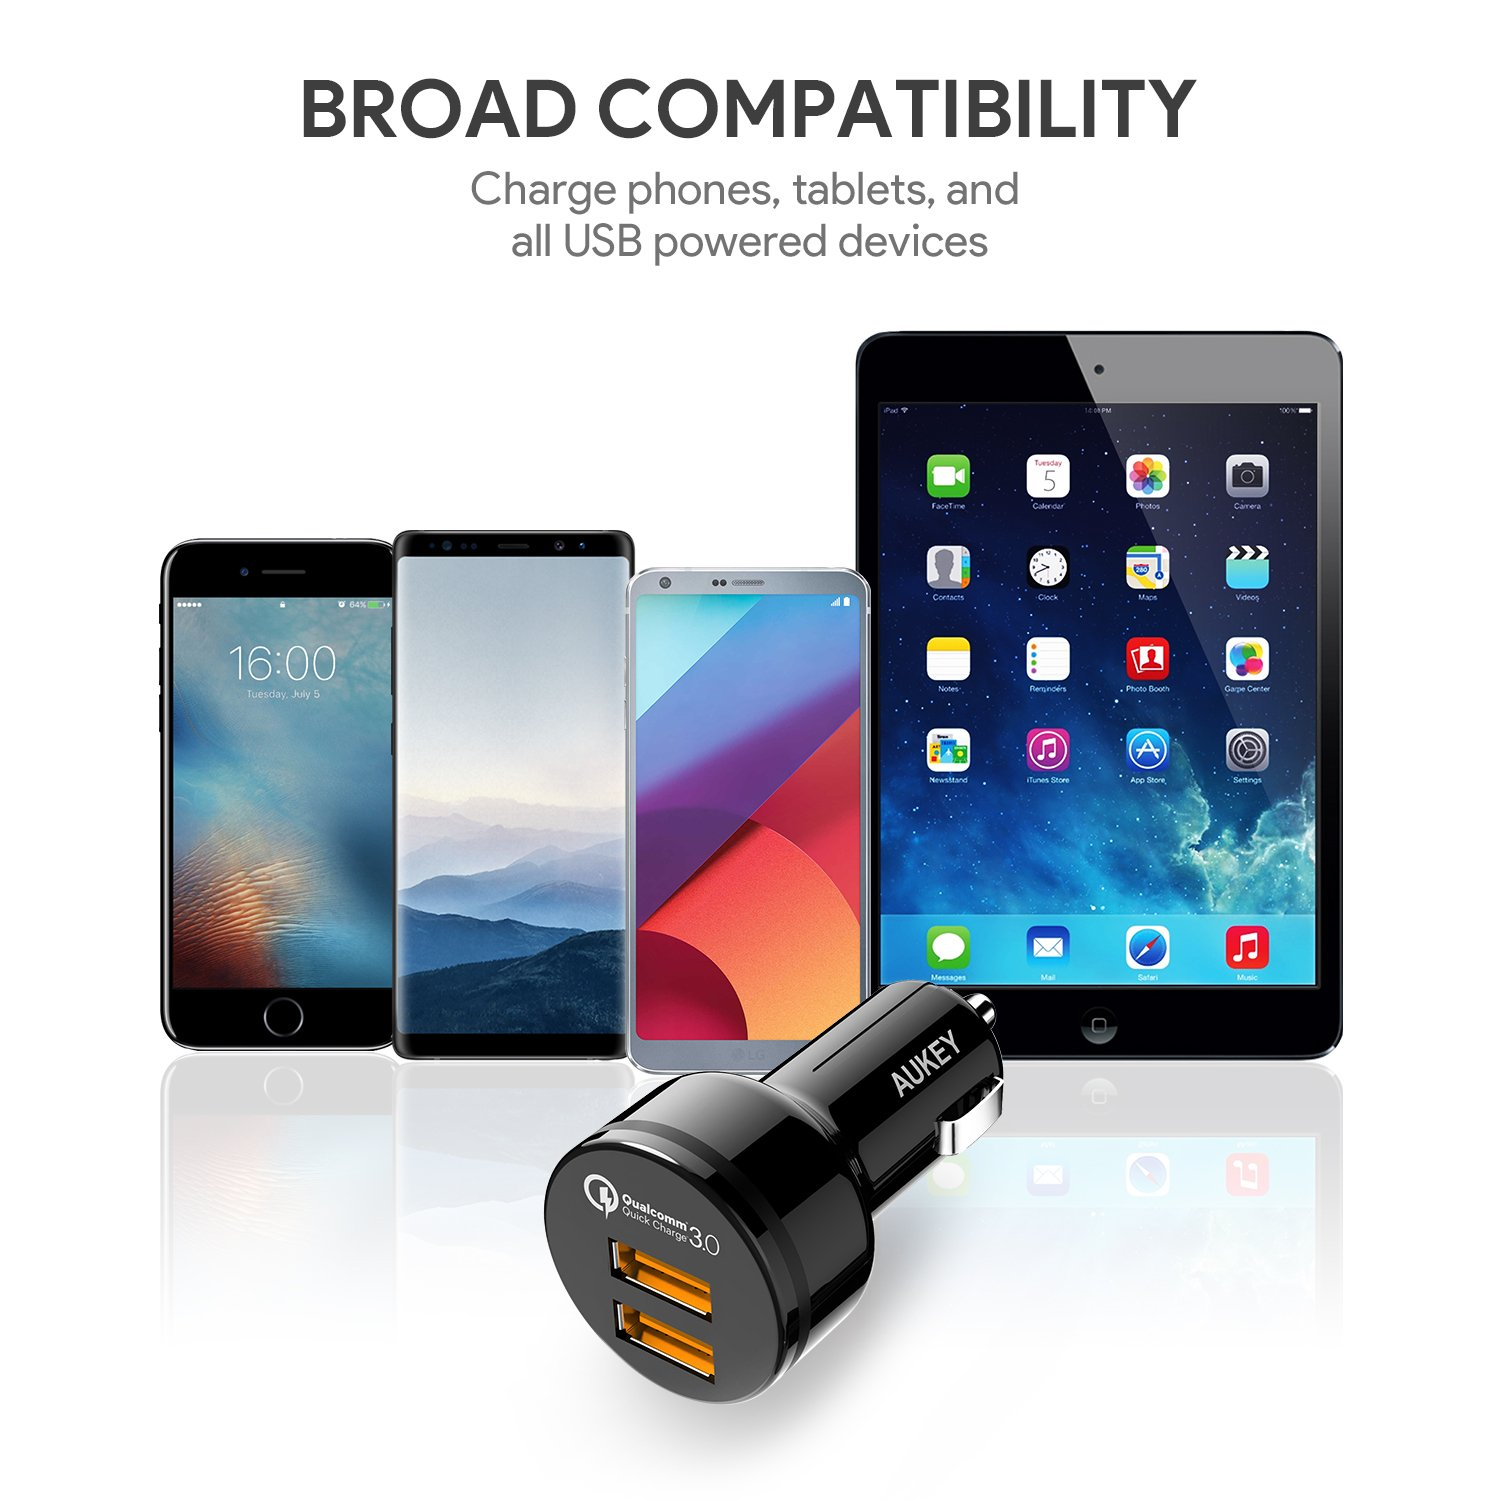 AUKEY QC 3.0 Car Charger, Dual Ports 18W Quick Charge Qualcomm Certified 36W in Total for Samsung Note 8 / S9 / S10+, LG G6 / V30, HTC 10 and More